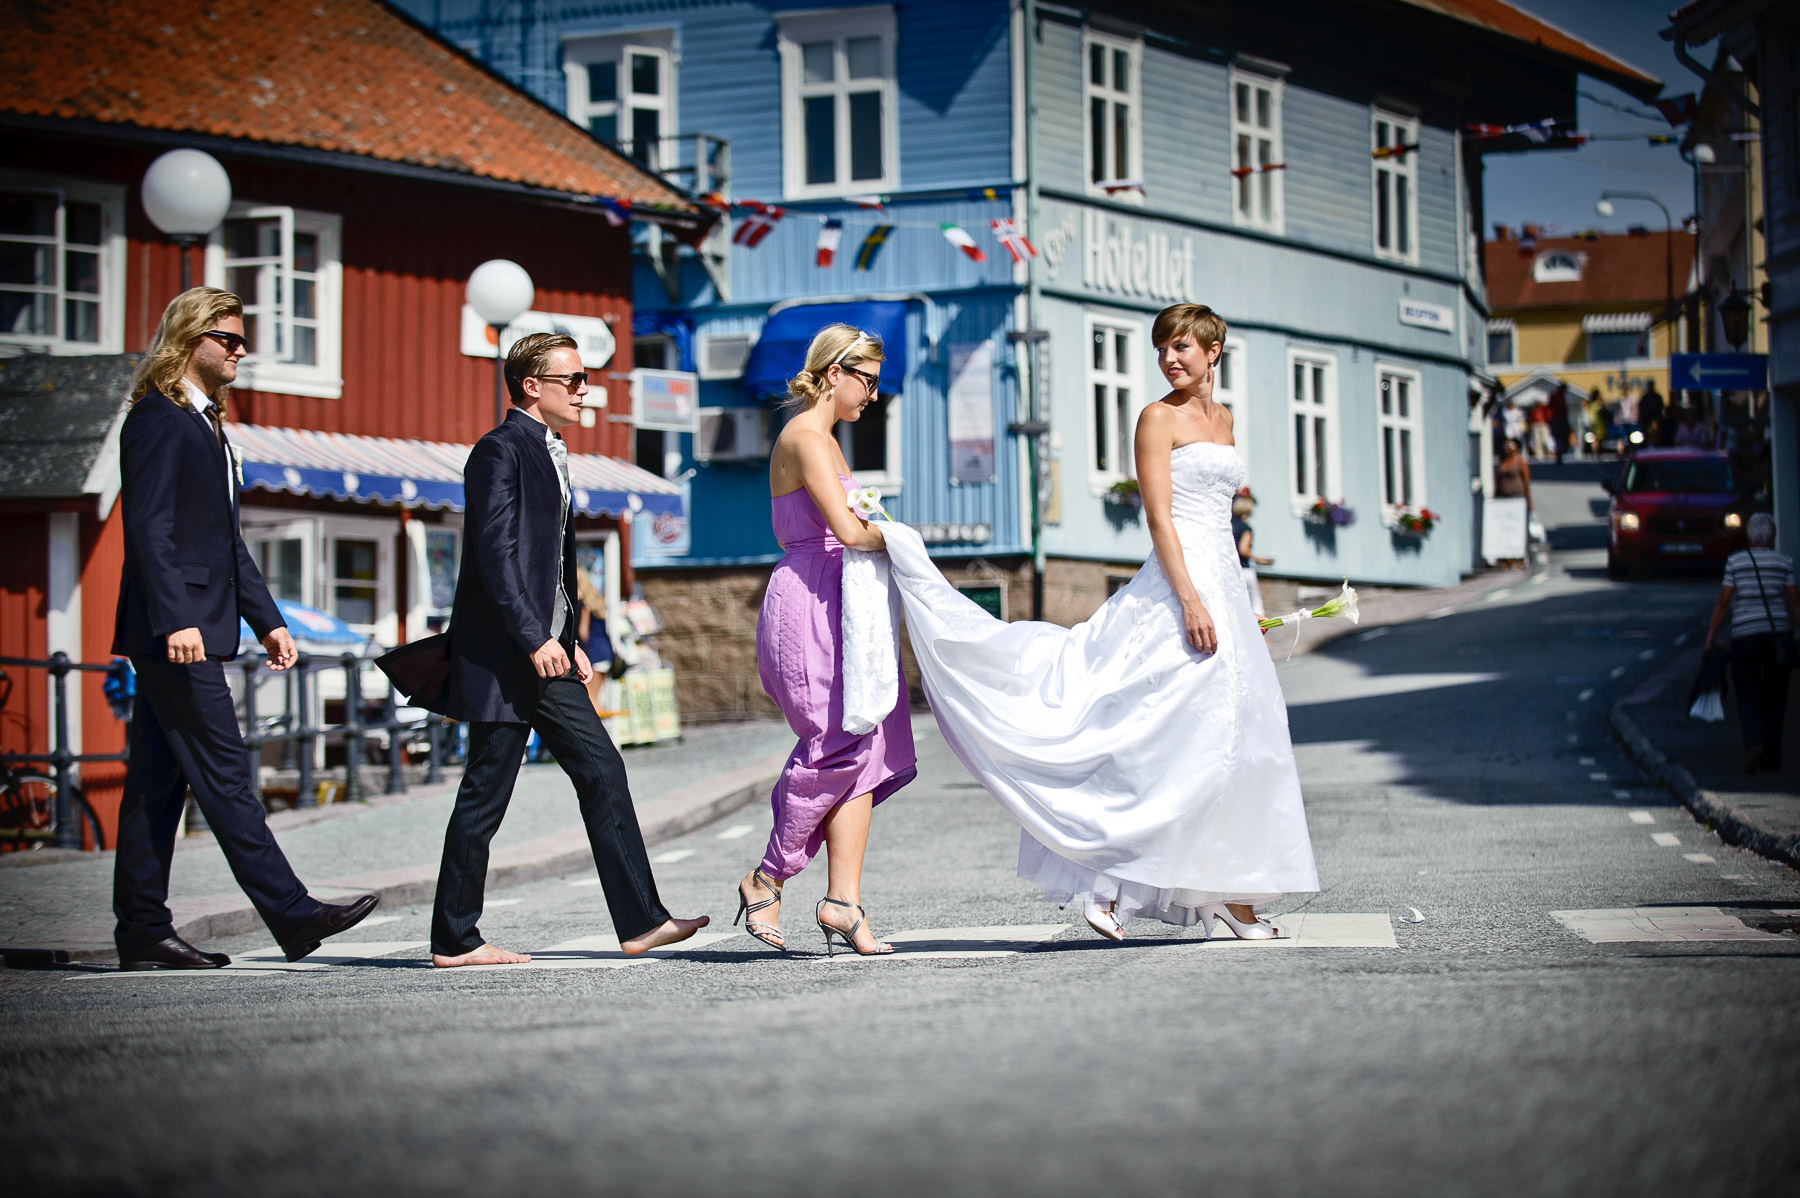 Click to enlarge image storahotelletbryggan-fjallbacka-ottossonphoto-1002-4.jpg